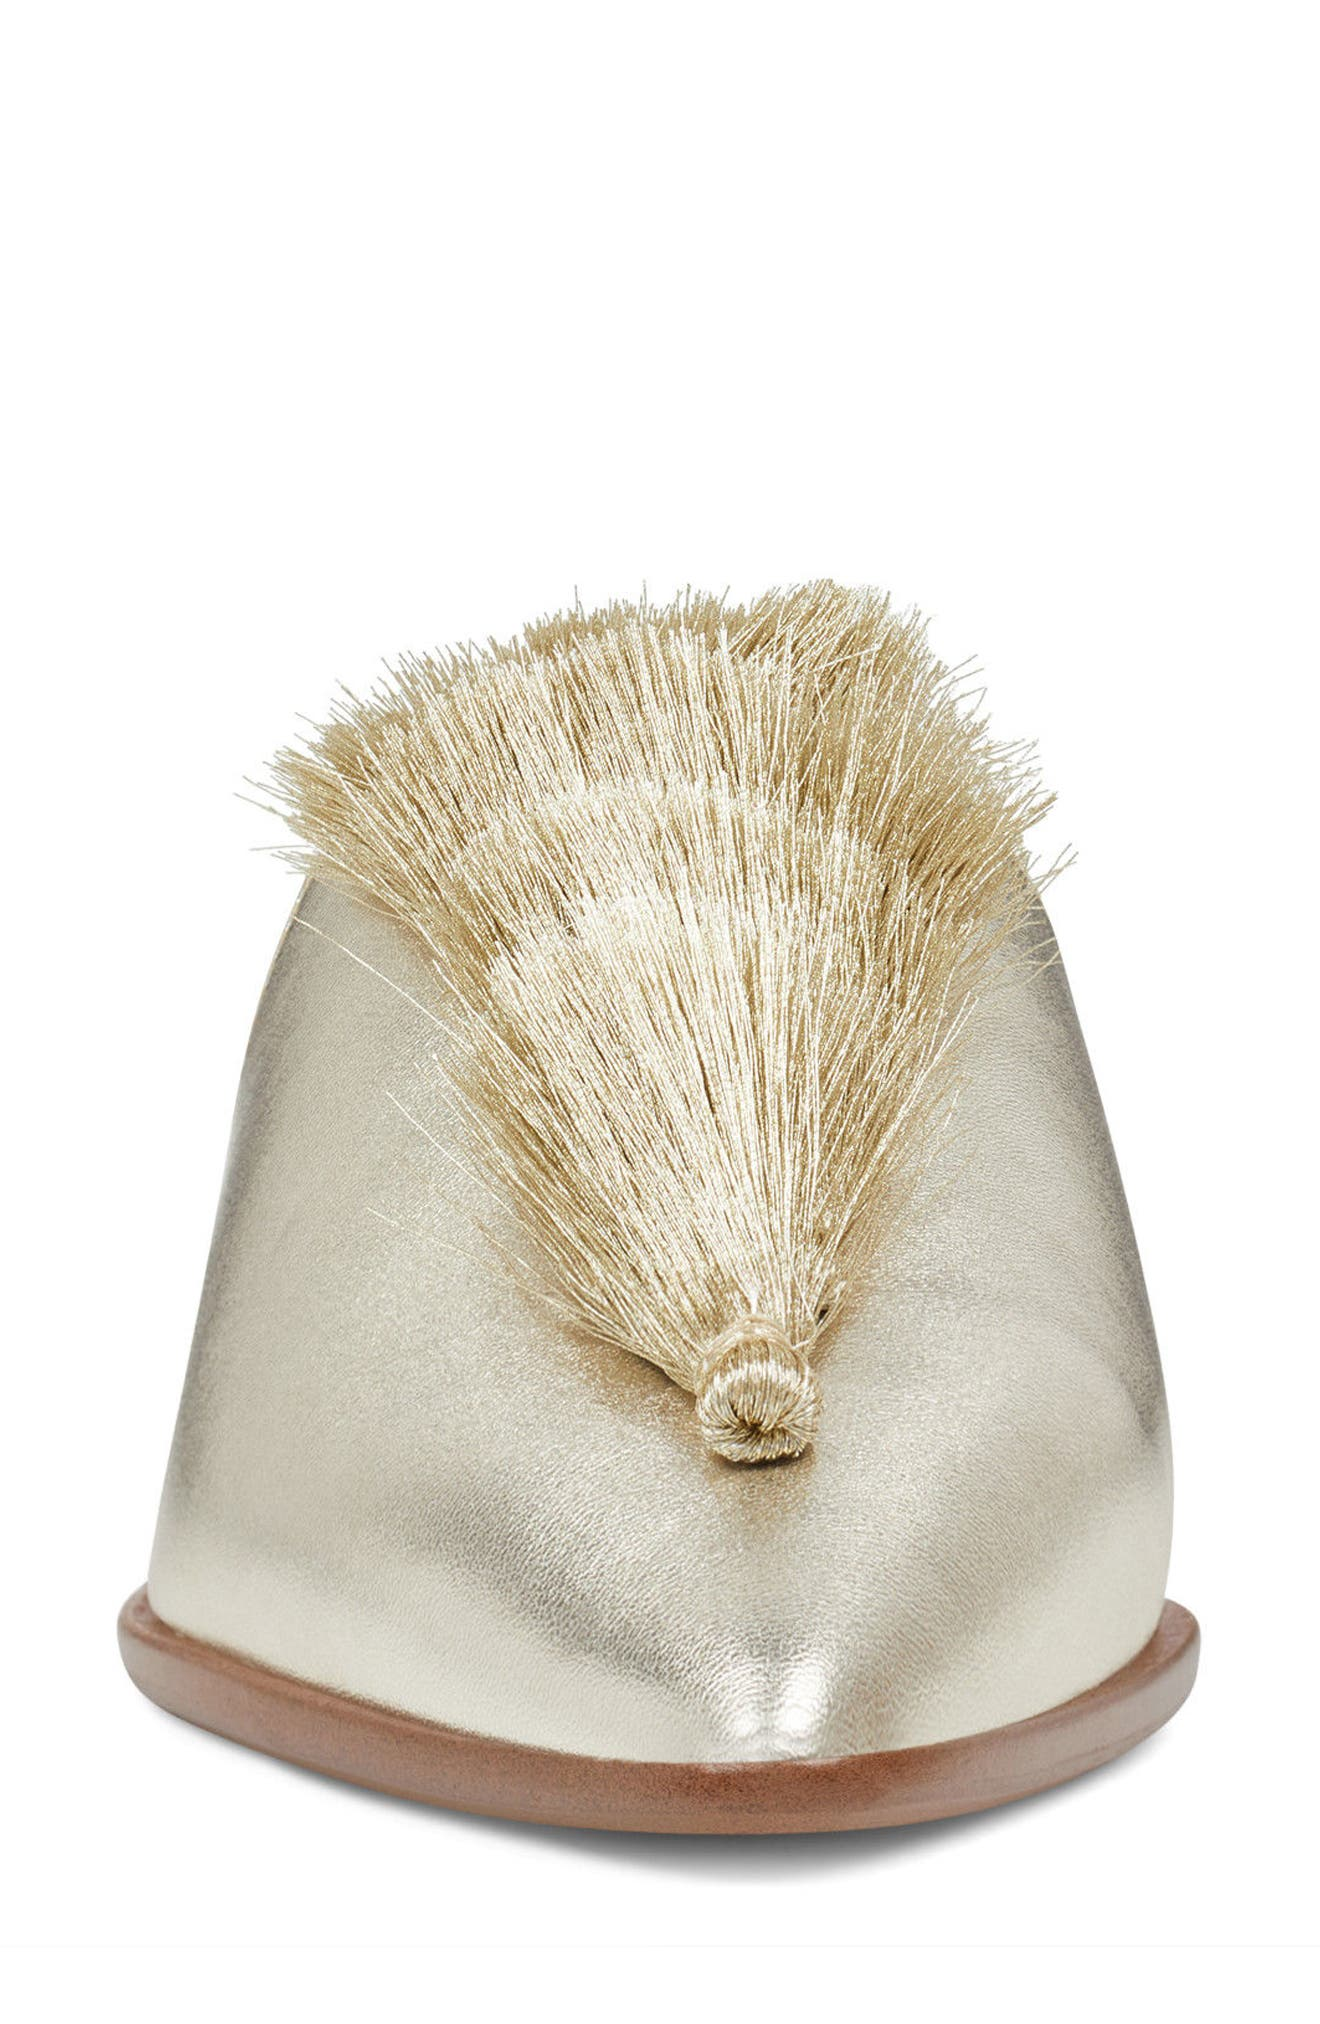 Ollial Fringed Loafer Mule,                             Alternate thumbnail 4, color,                             Light Gold Leather